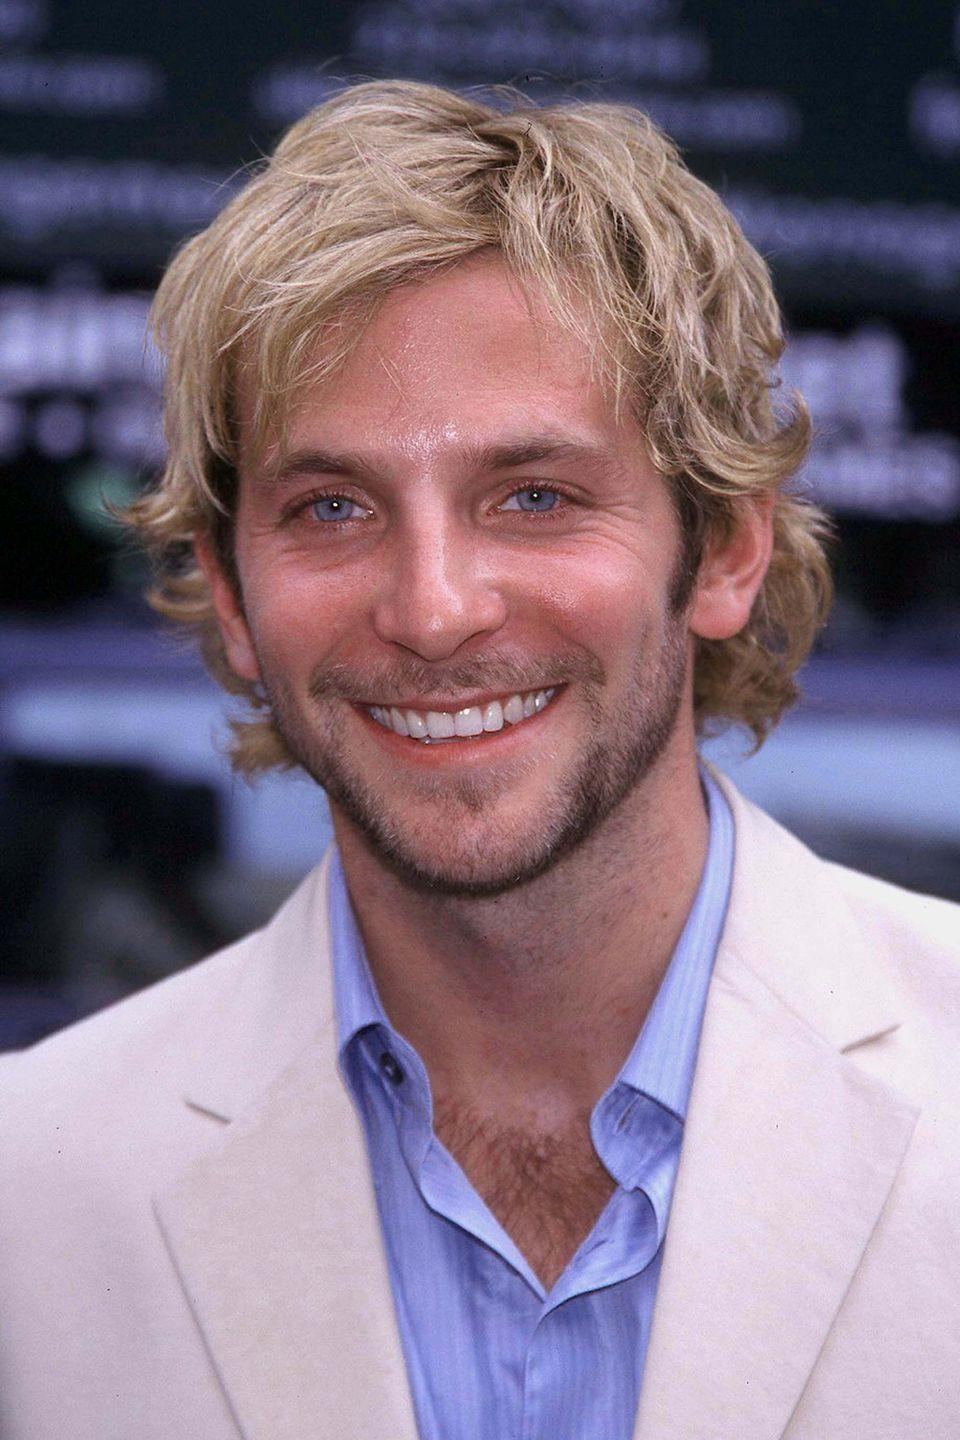 <p>Bradley Cooper's big breakout was in <em>The Hangover</em>, but before that the actor was on TV in <em>Alias</em>. Here he is on the red carpet for an ABC up front party.</p>